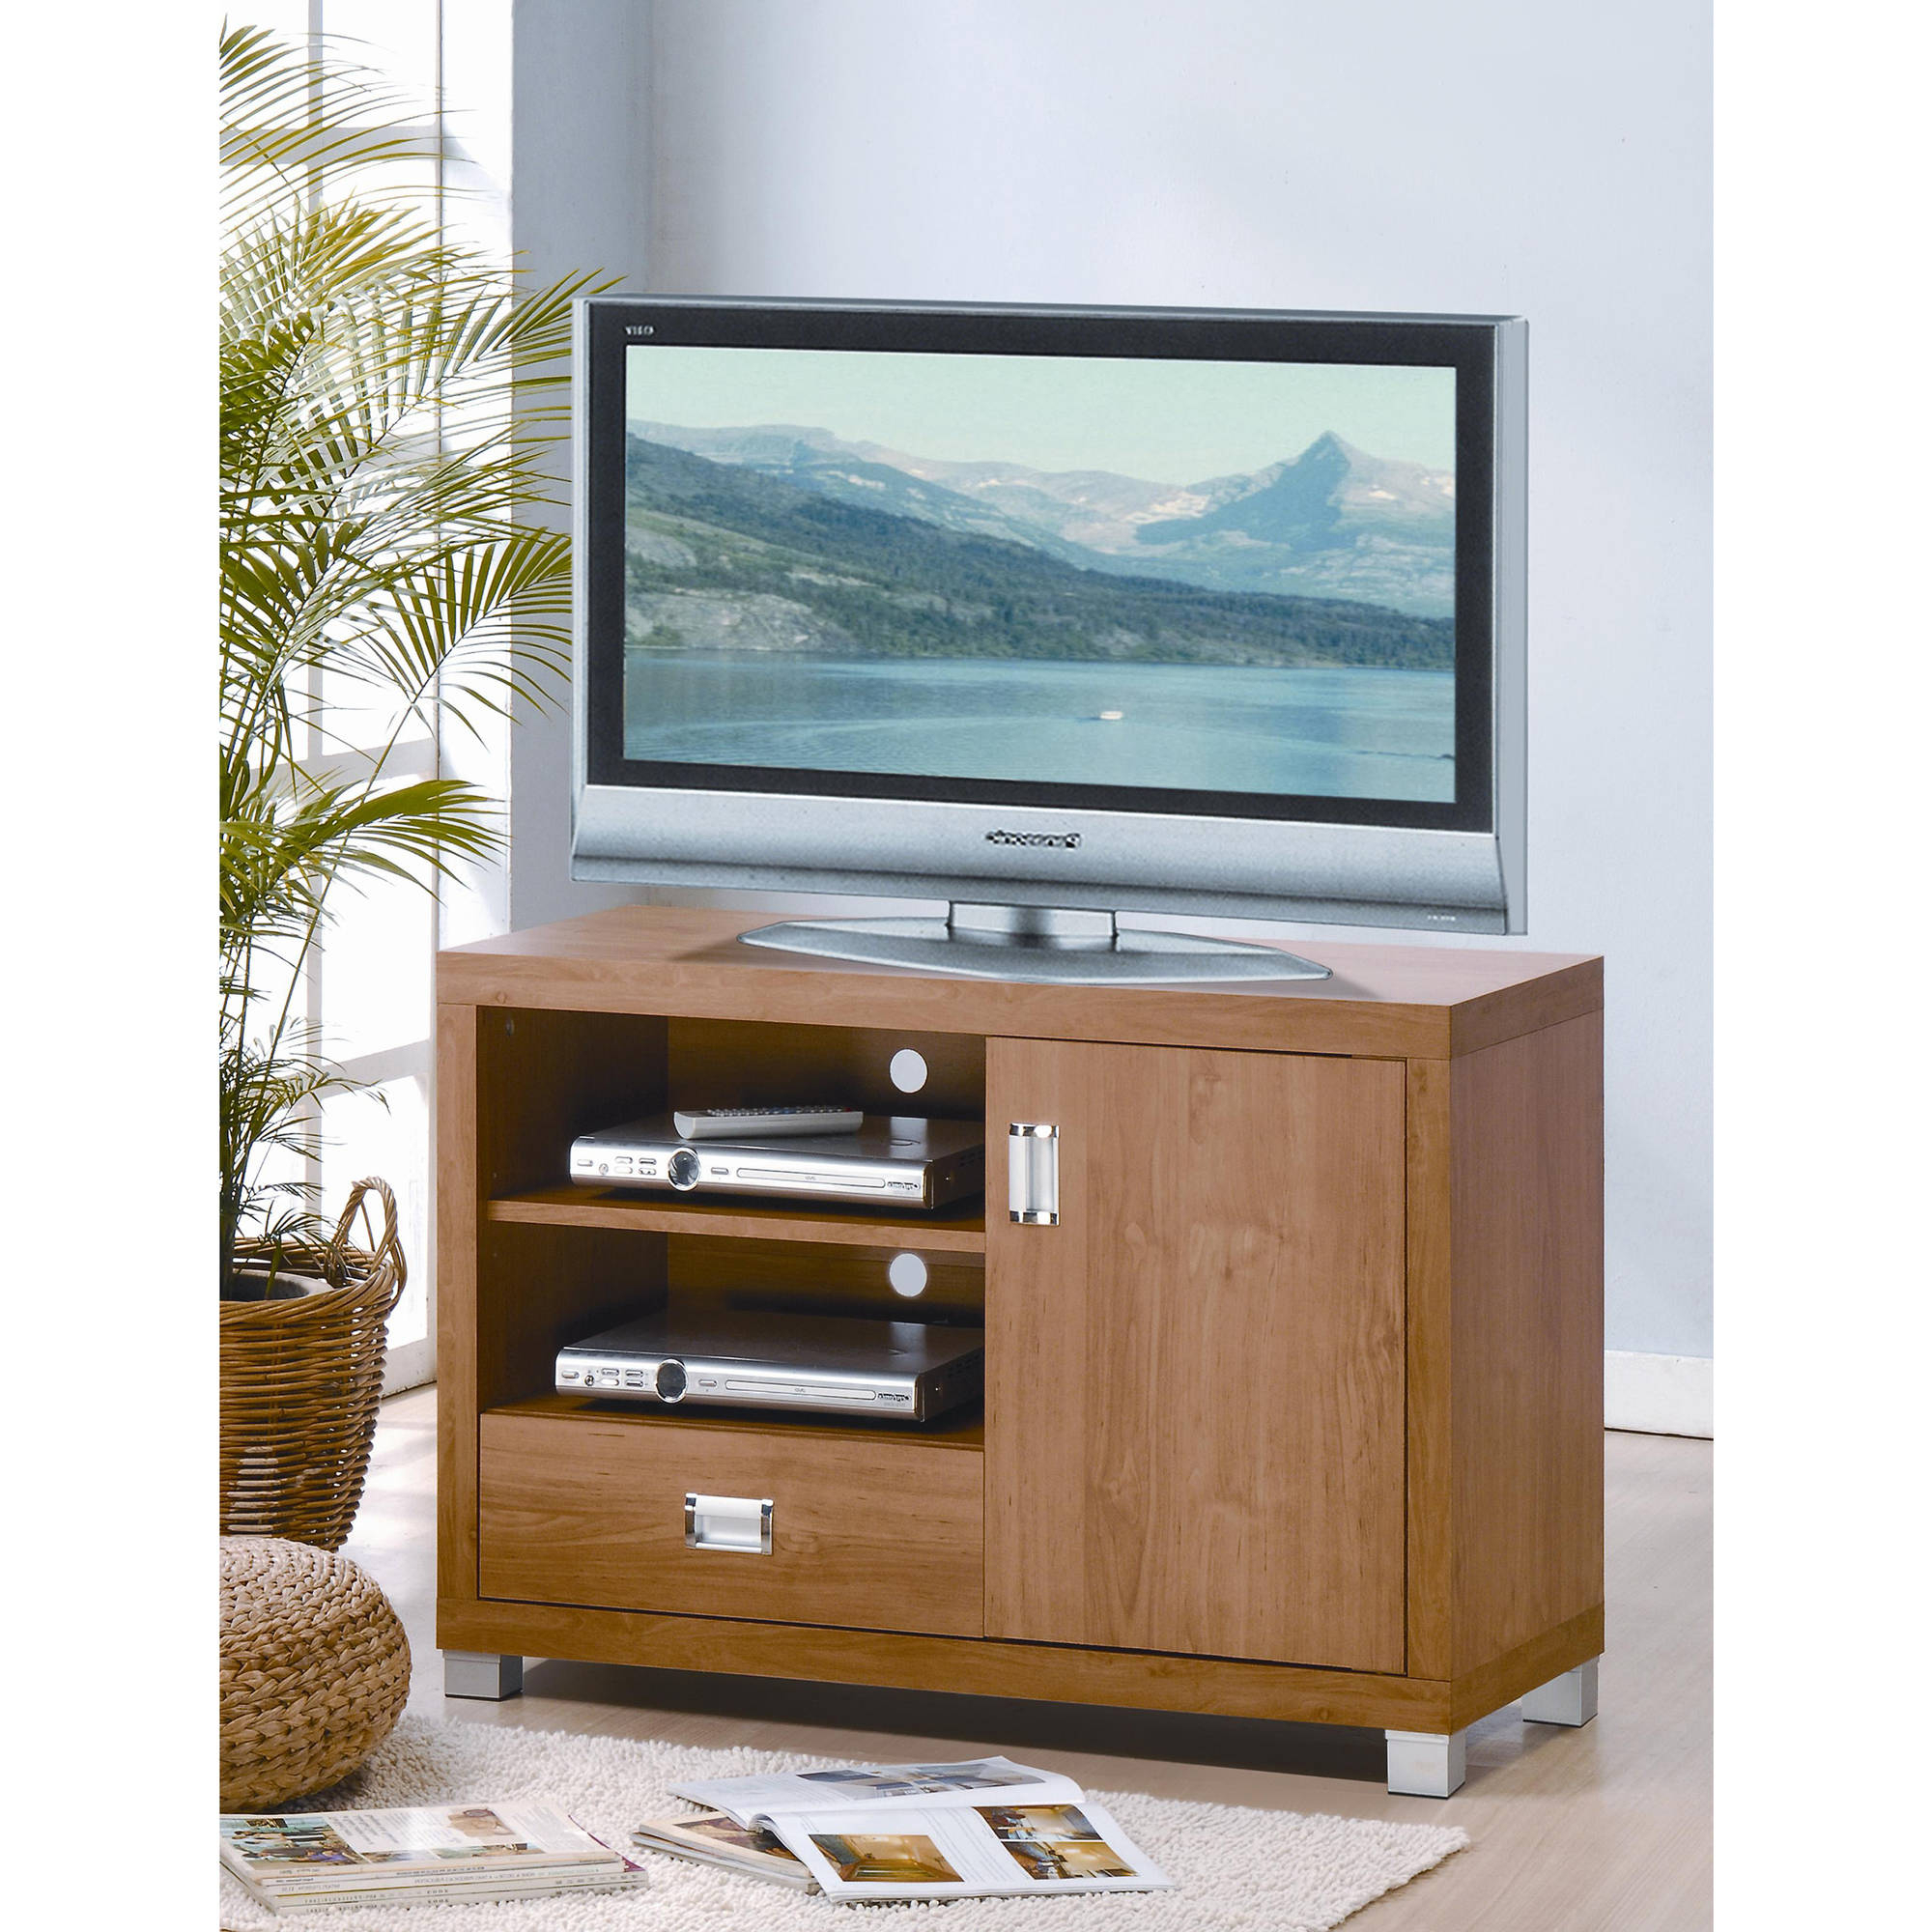 "Most Recent Techni Mobili Tv Stand For Tvs Up To 38"" With Storage, Maple (Rta With Regard To Maple Tv Stands (View 11 of 20)"